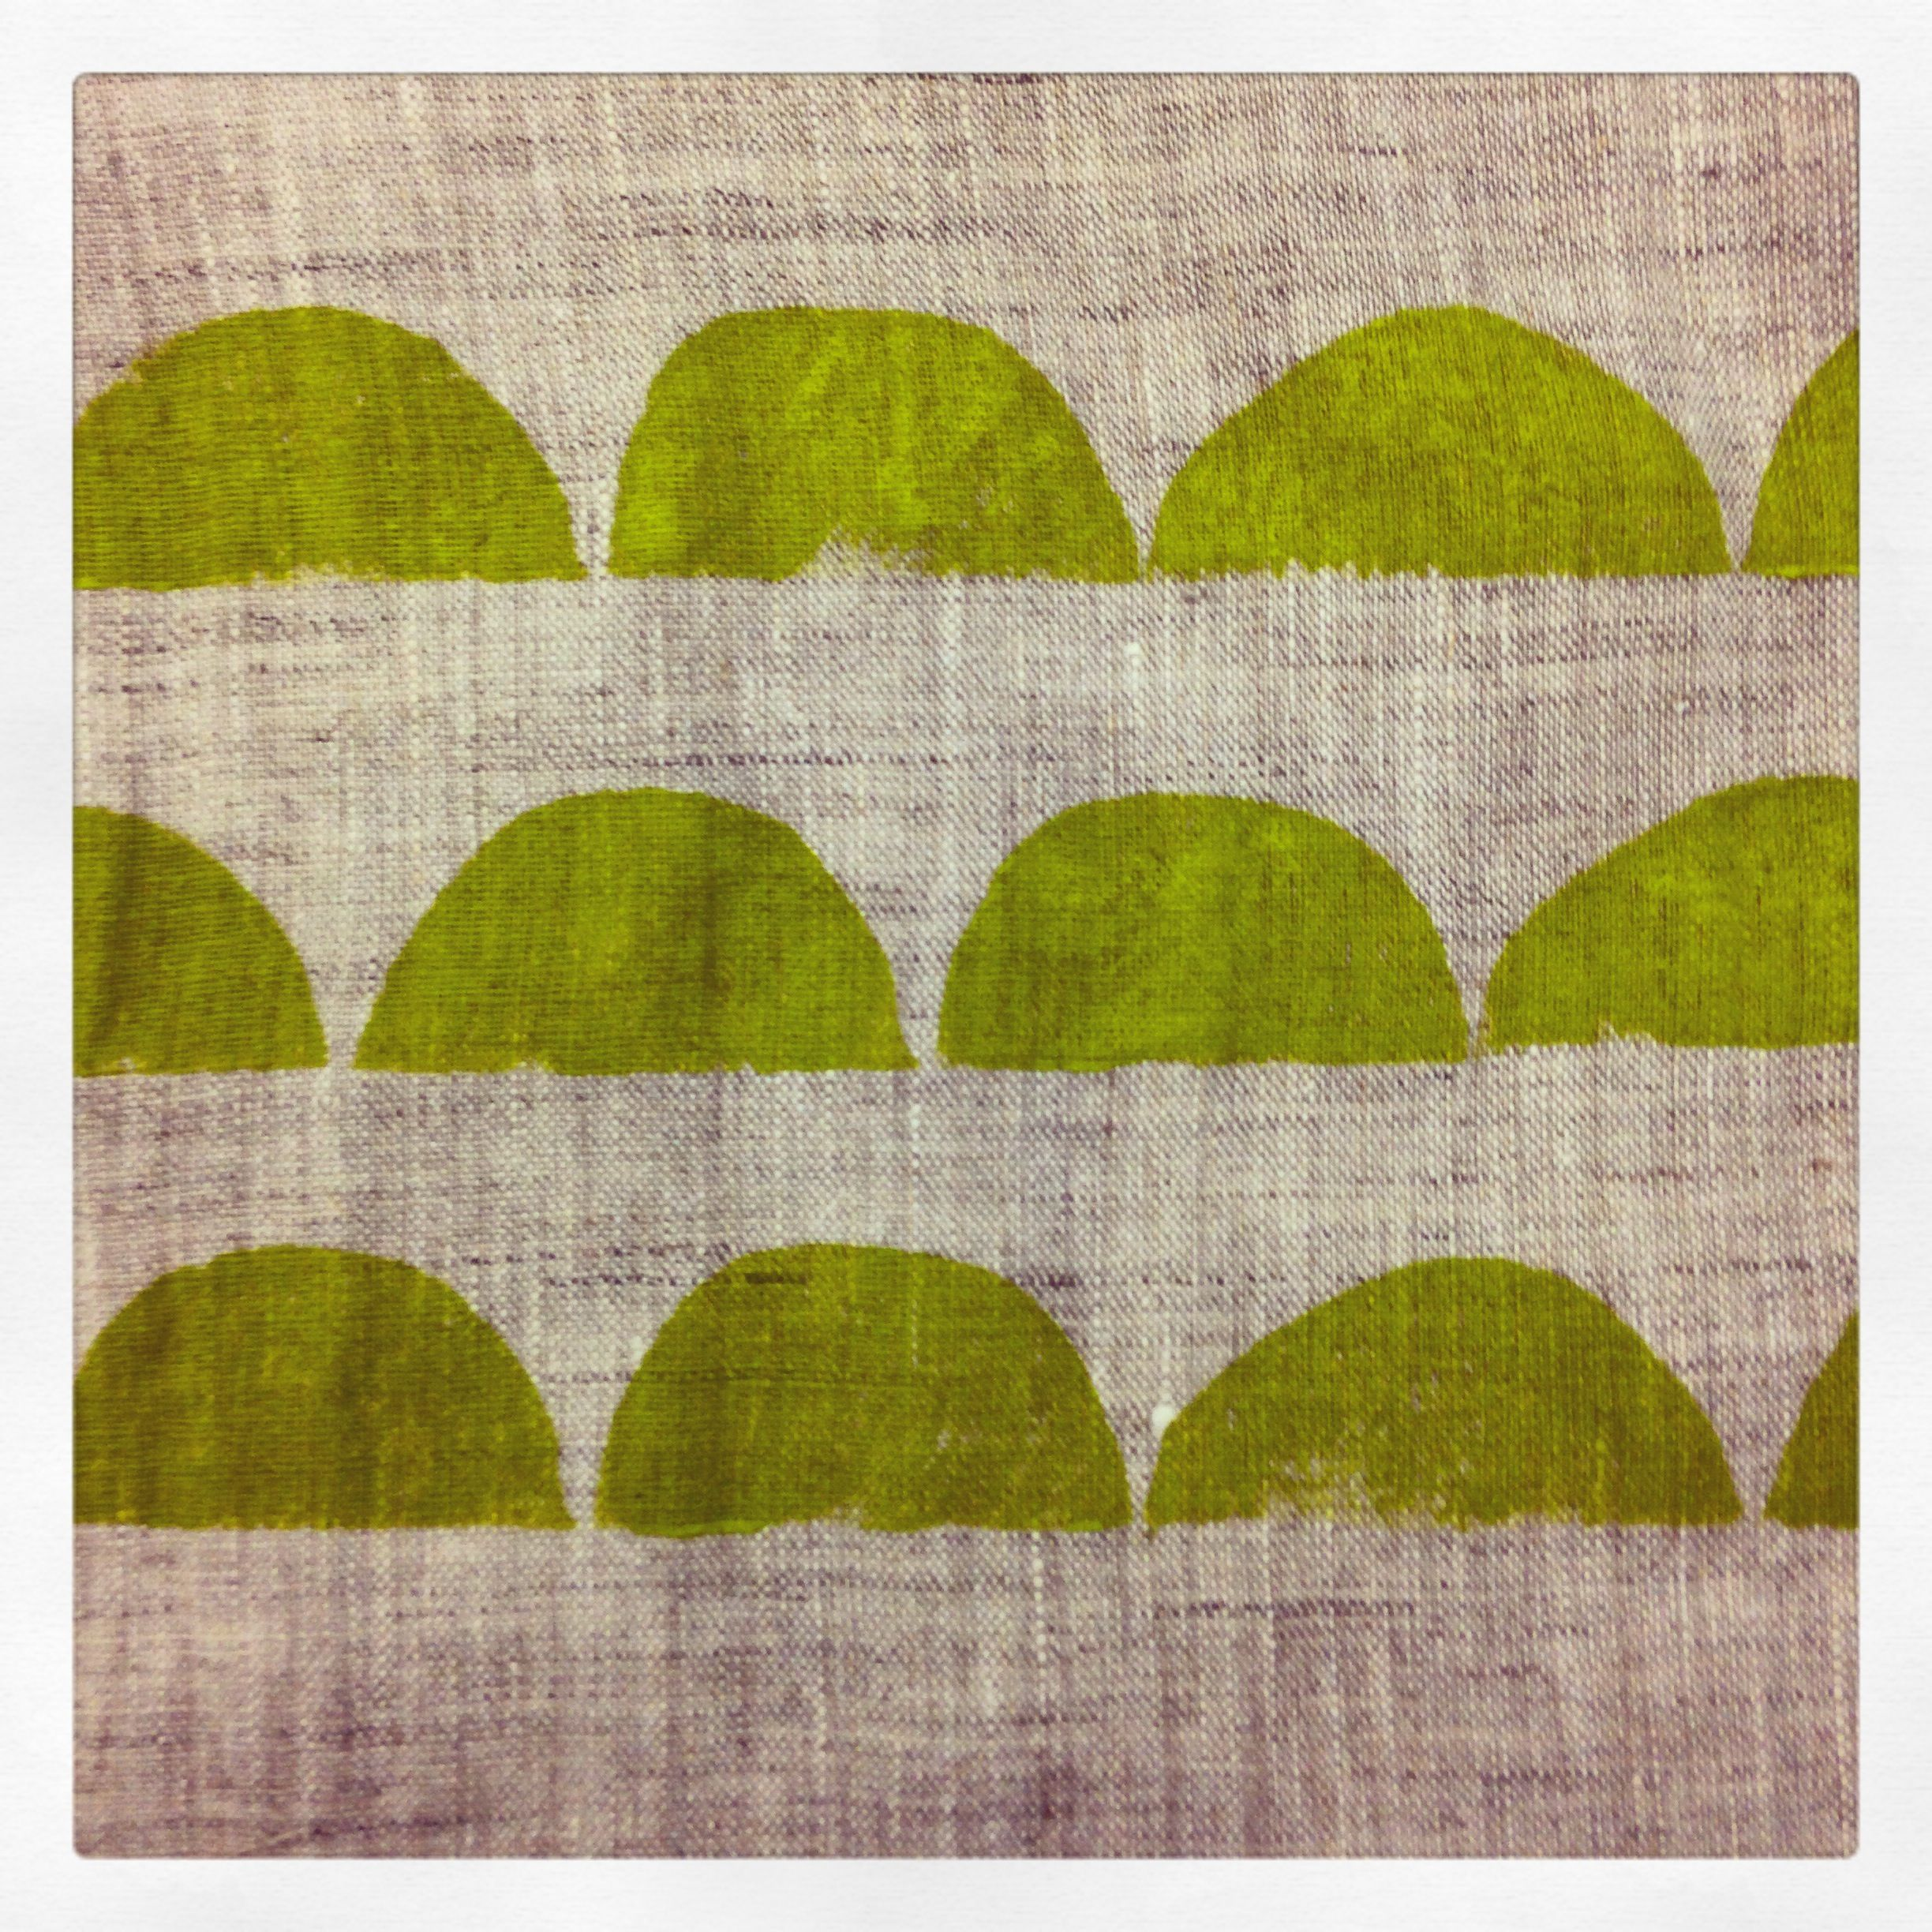 A detail from a block printed linen scarf.